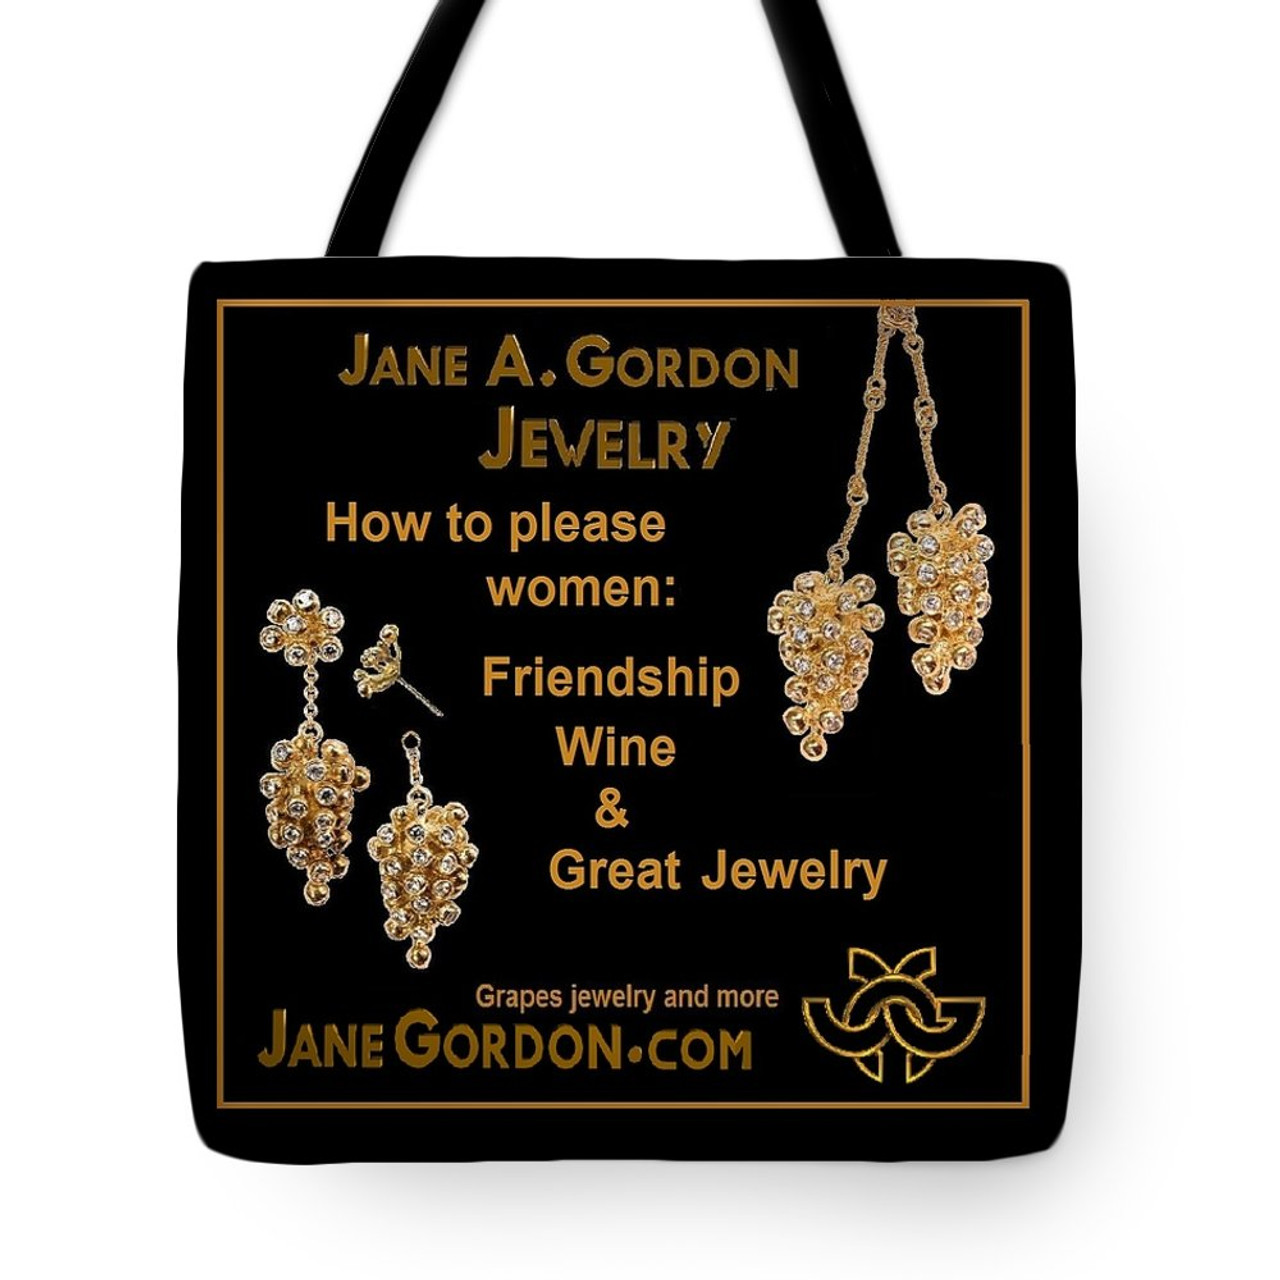 """How to Please Women""  Grapes jewelry on artful tote bags: Art meets fashion."